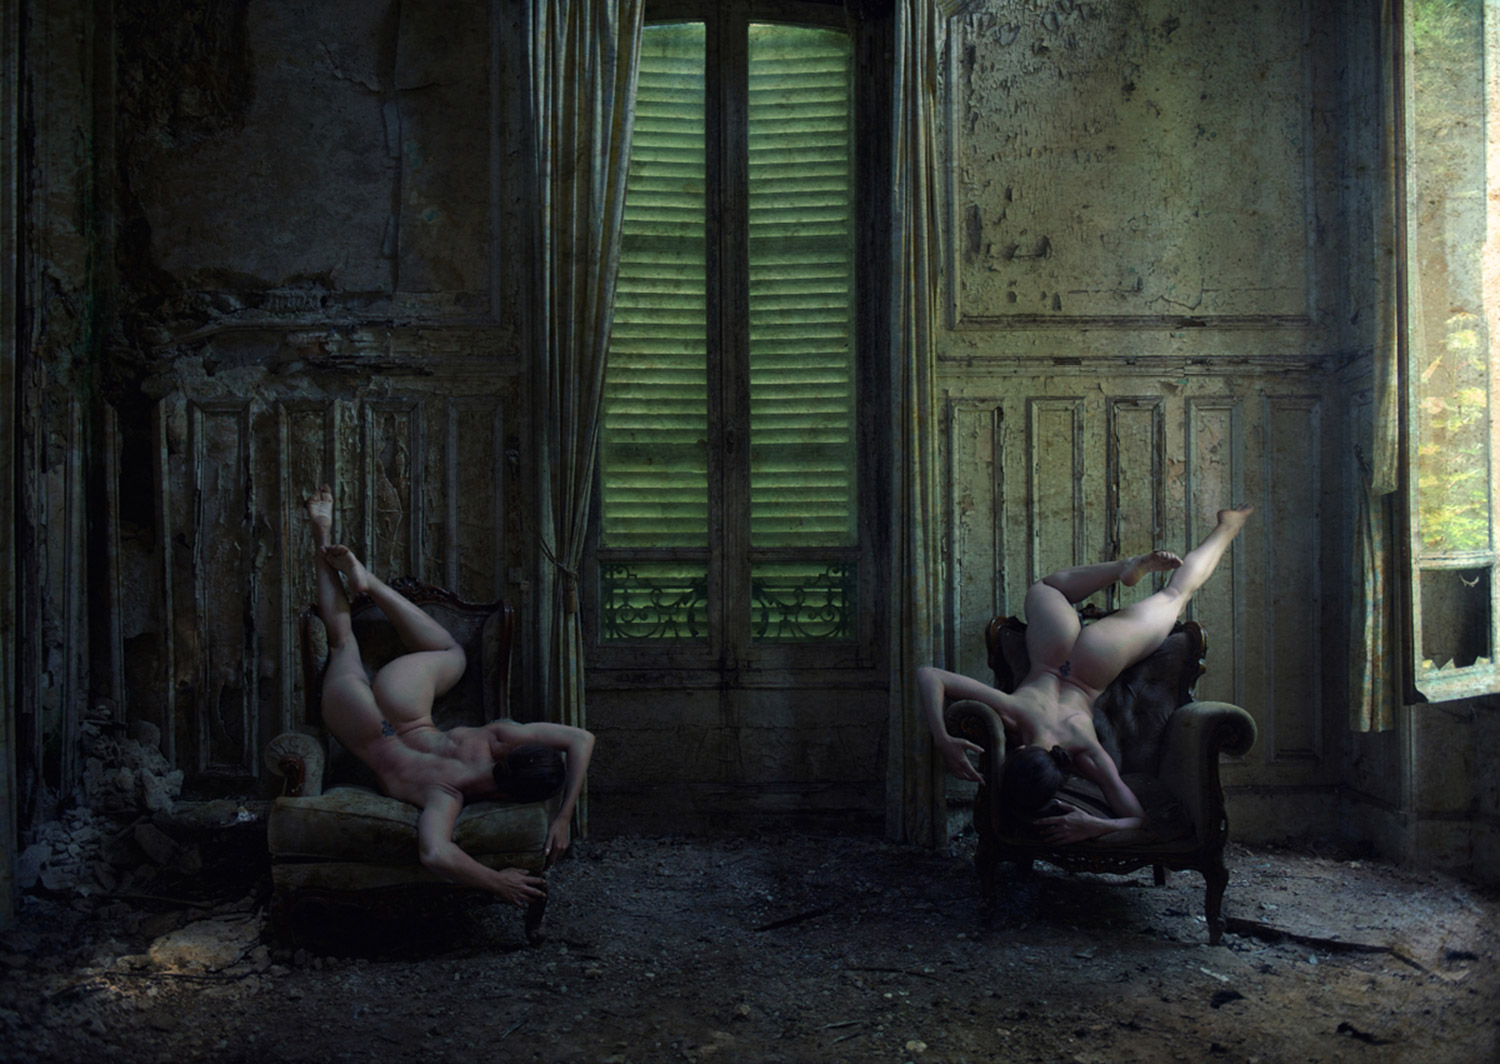 Jeremy Gibbs, Ayla in Decay, symmetrical nudes posed in abandoned buildiing